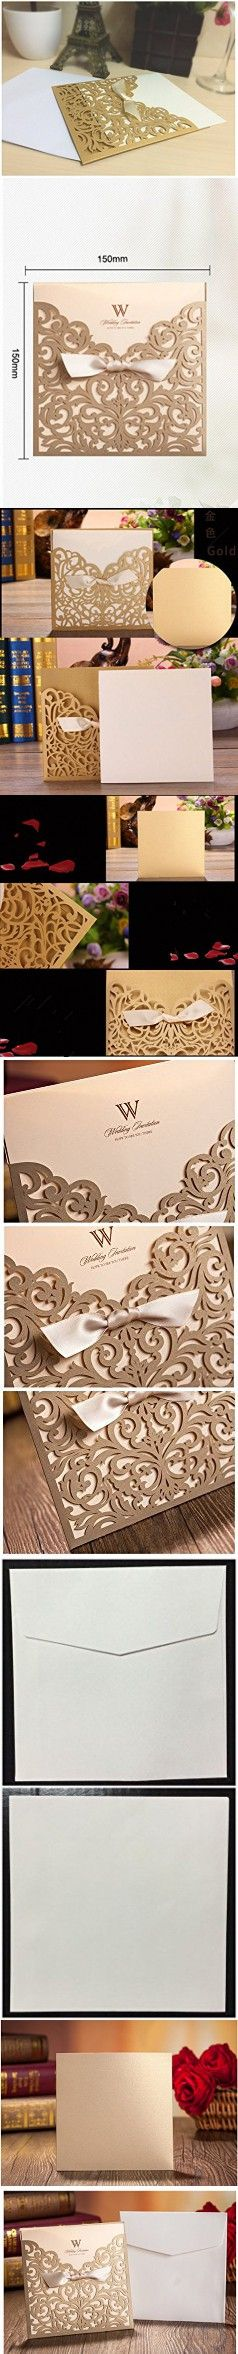 """Graces Dawn® 50pcs Laser-cut Lace Flower Pattern Wedding Invitations Cards(set of 50pcs) and Blank Cards and Envelopes 6 x 6"""" - Value Pack (Champagne Gold)"""